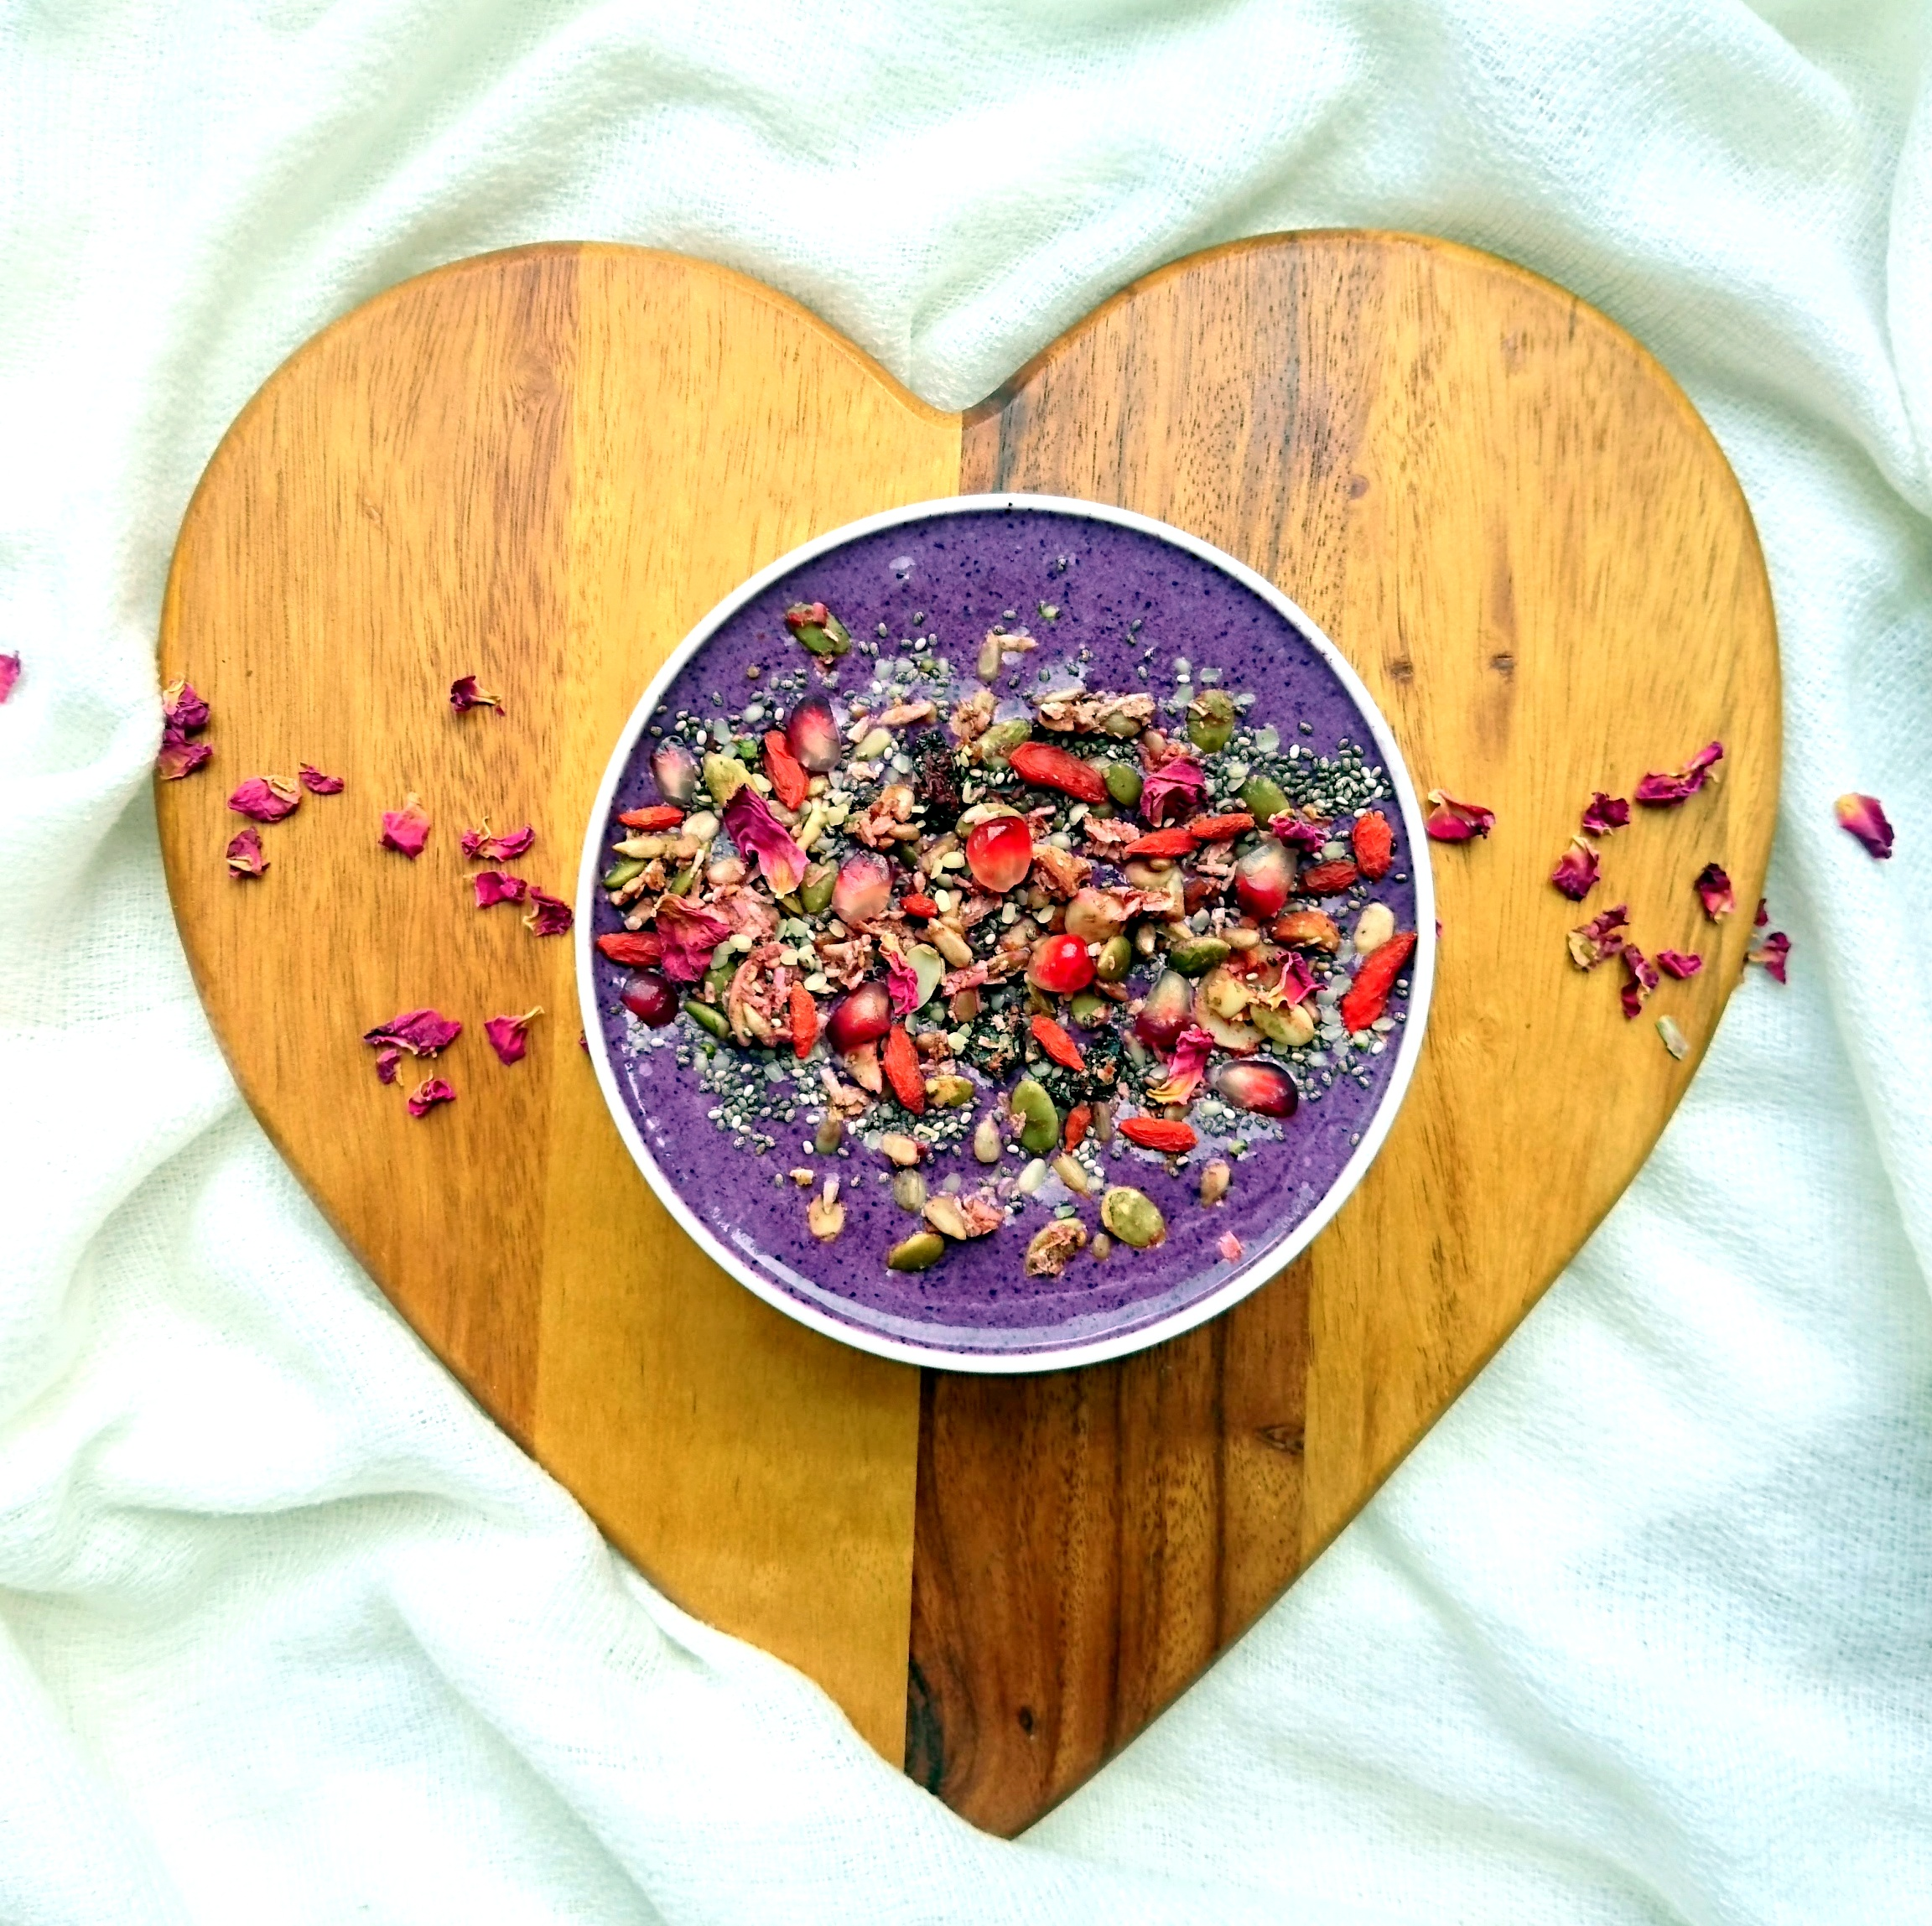 Blueberry Creative Nature Superfood Smoothie Healthy&Psyched